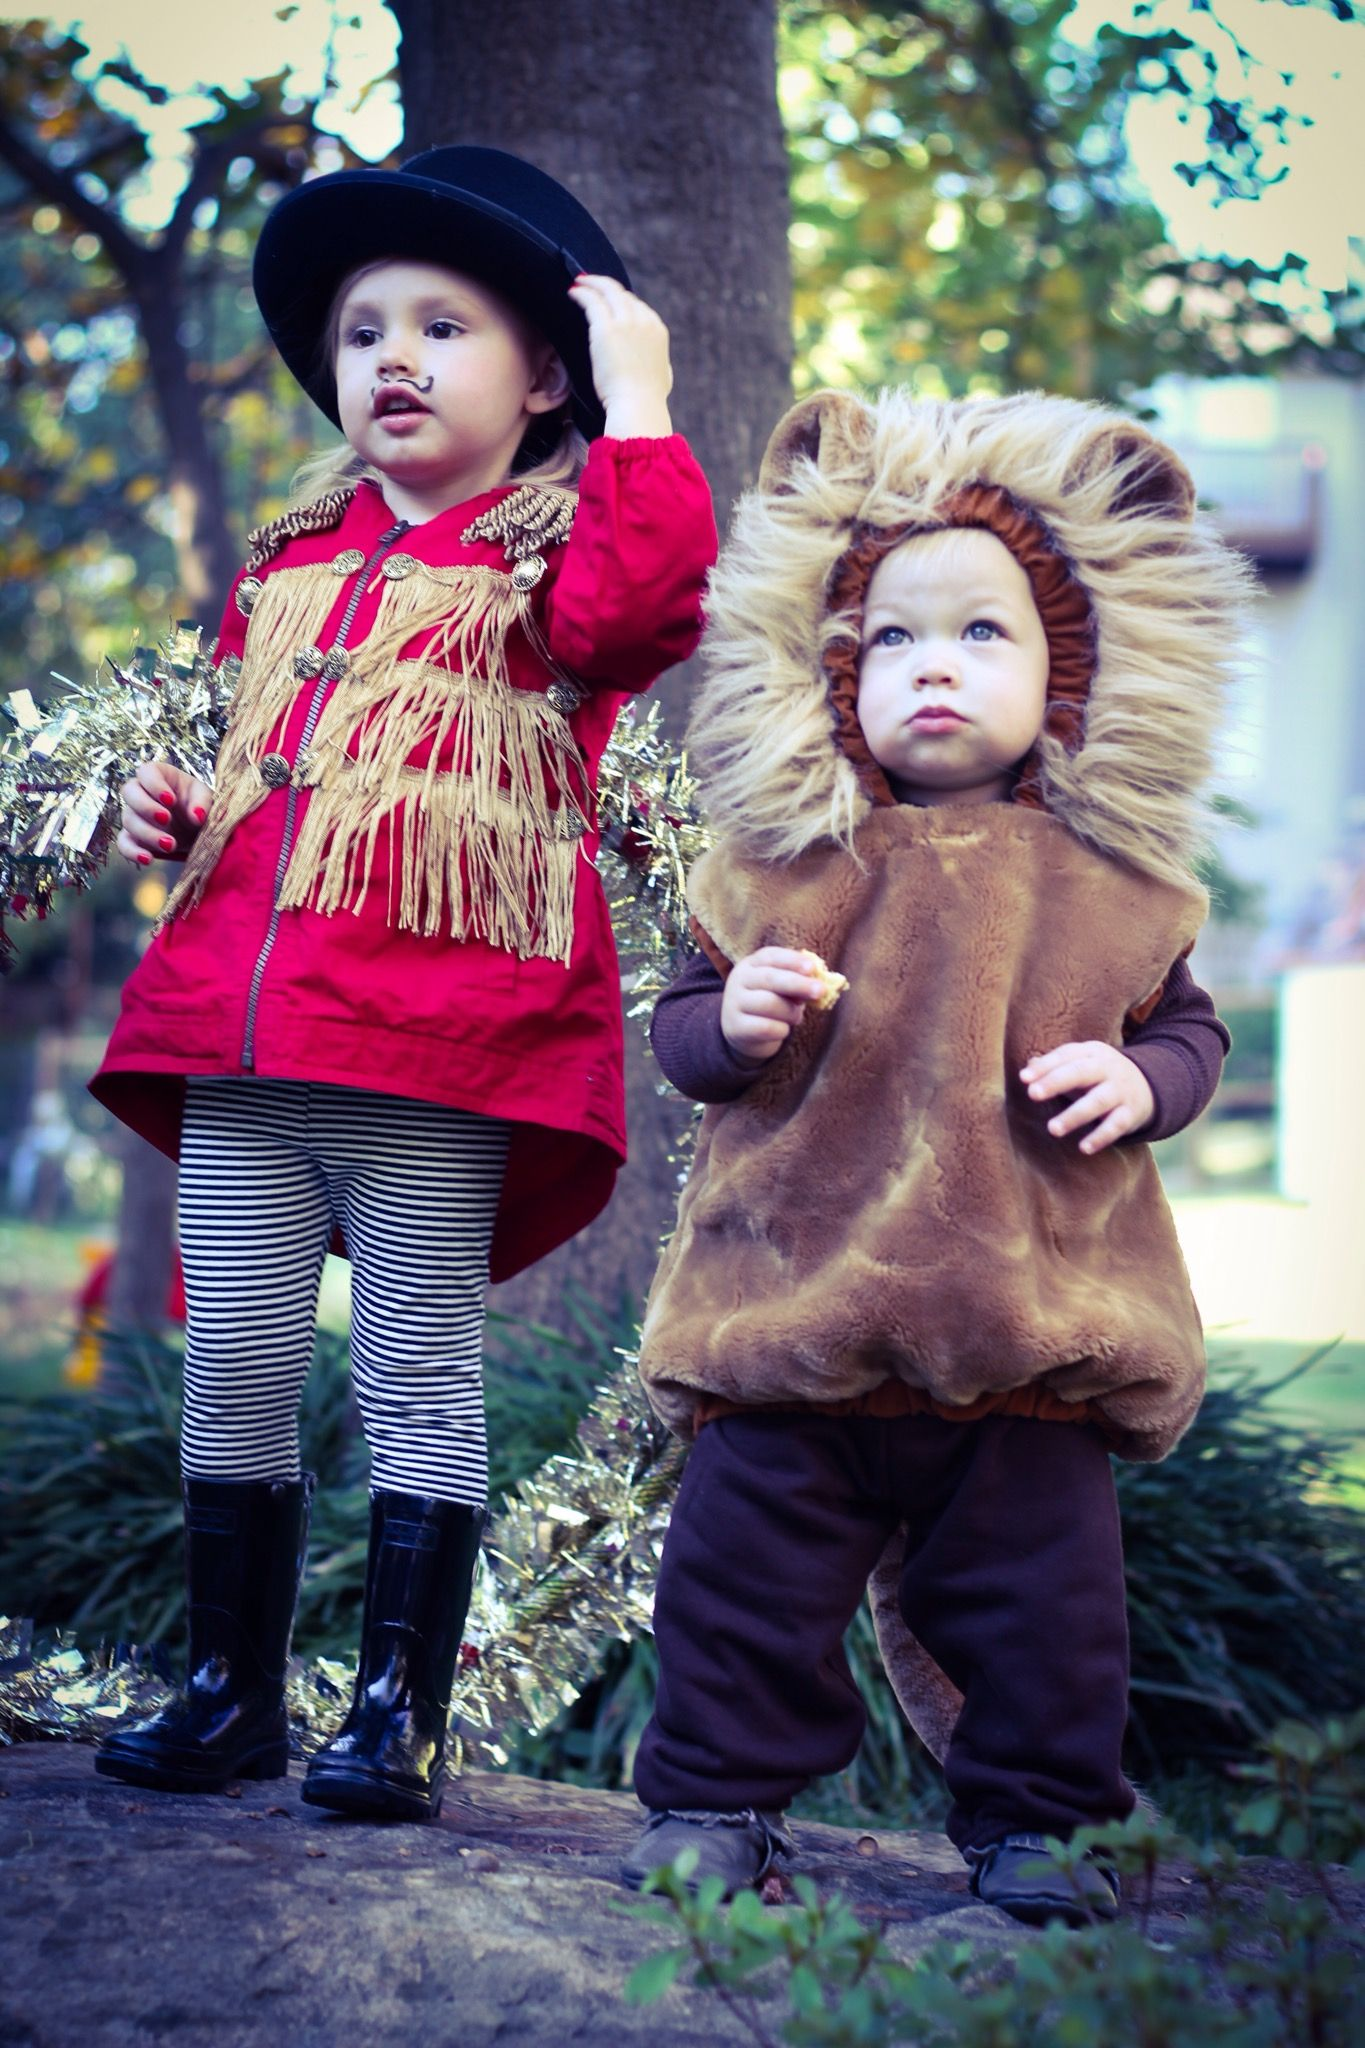 Lion Tamer And Costumes Kids Toddler Siblings